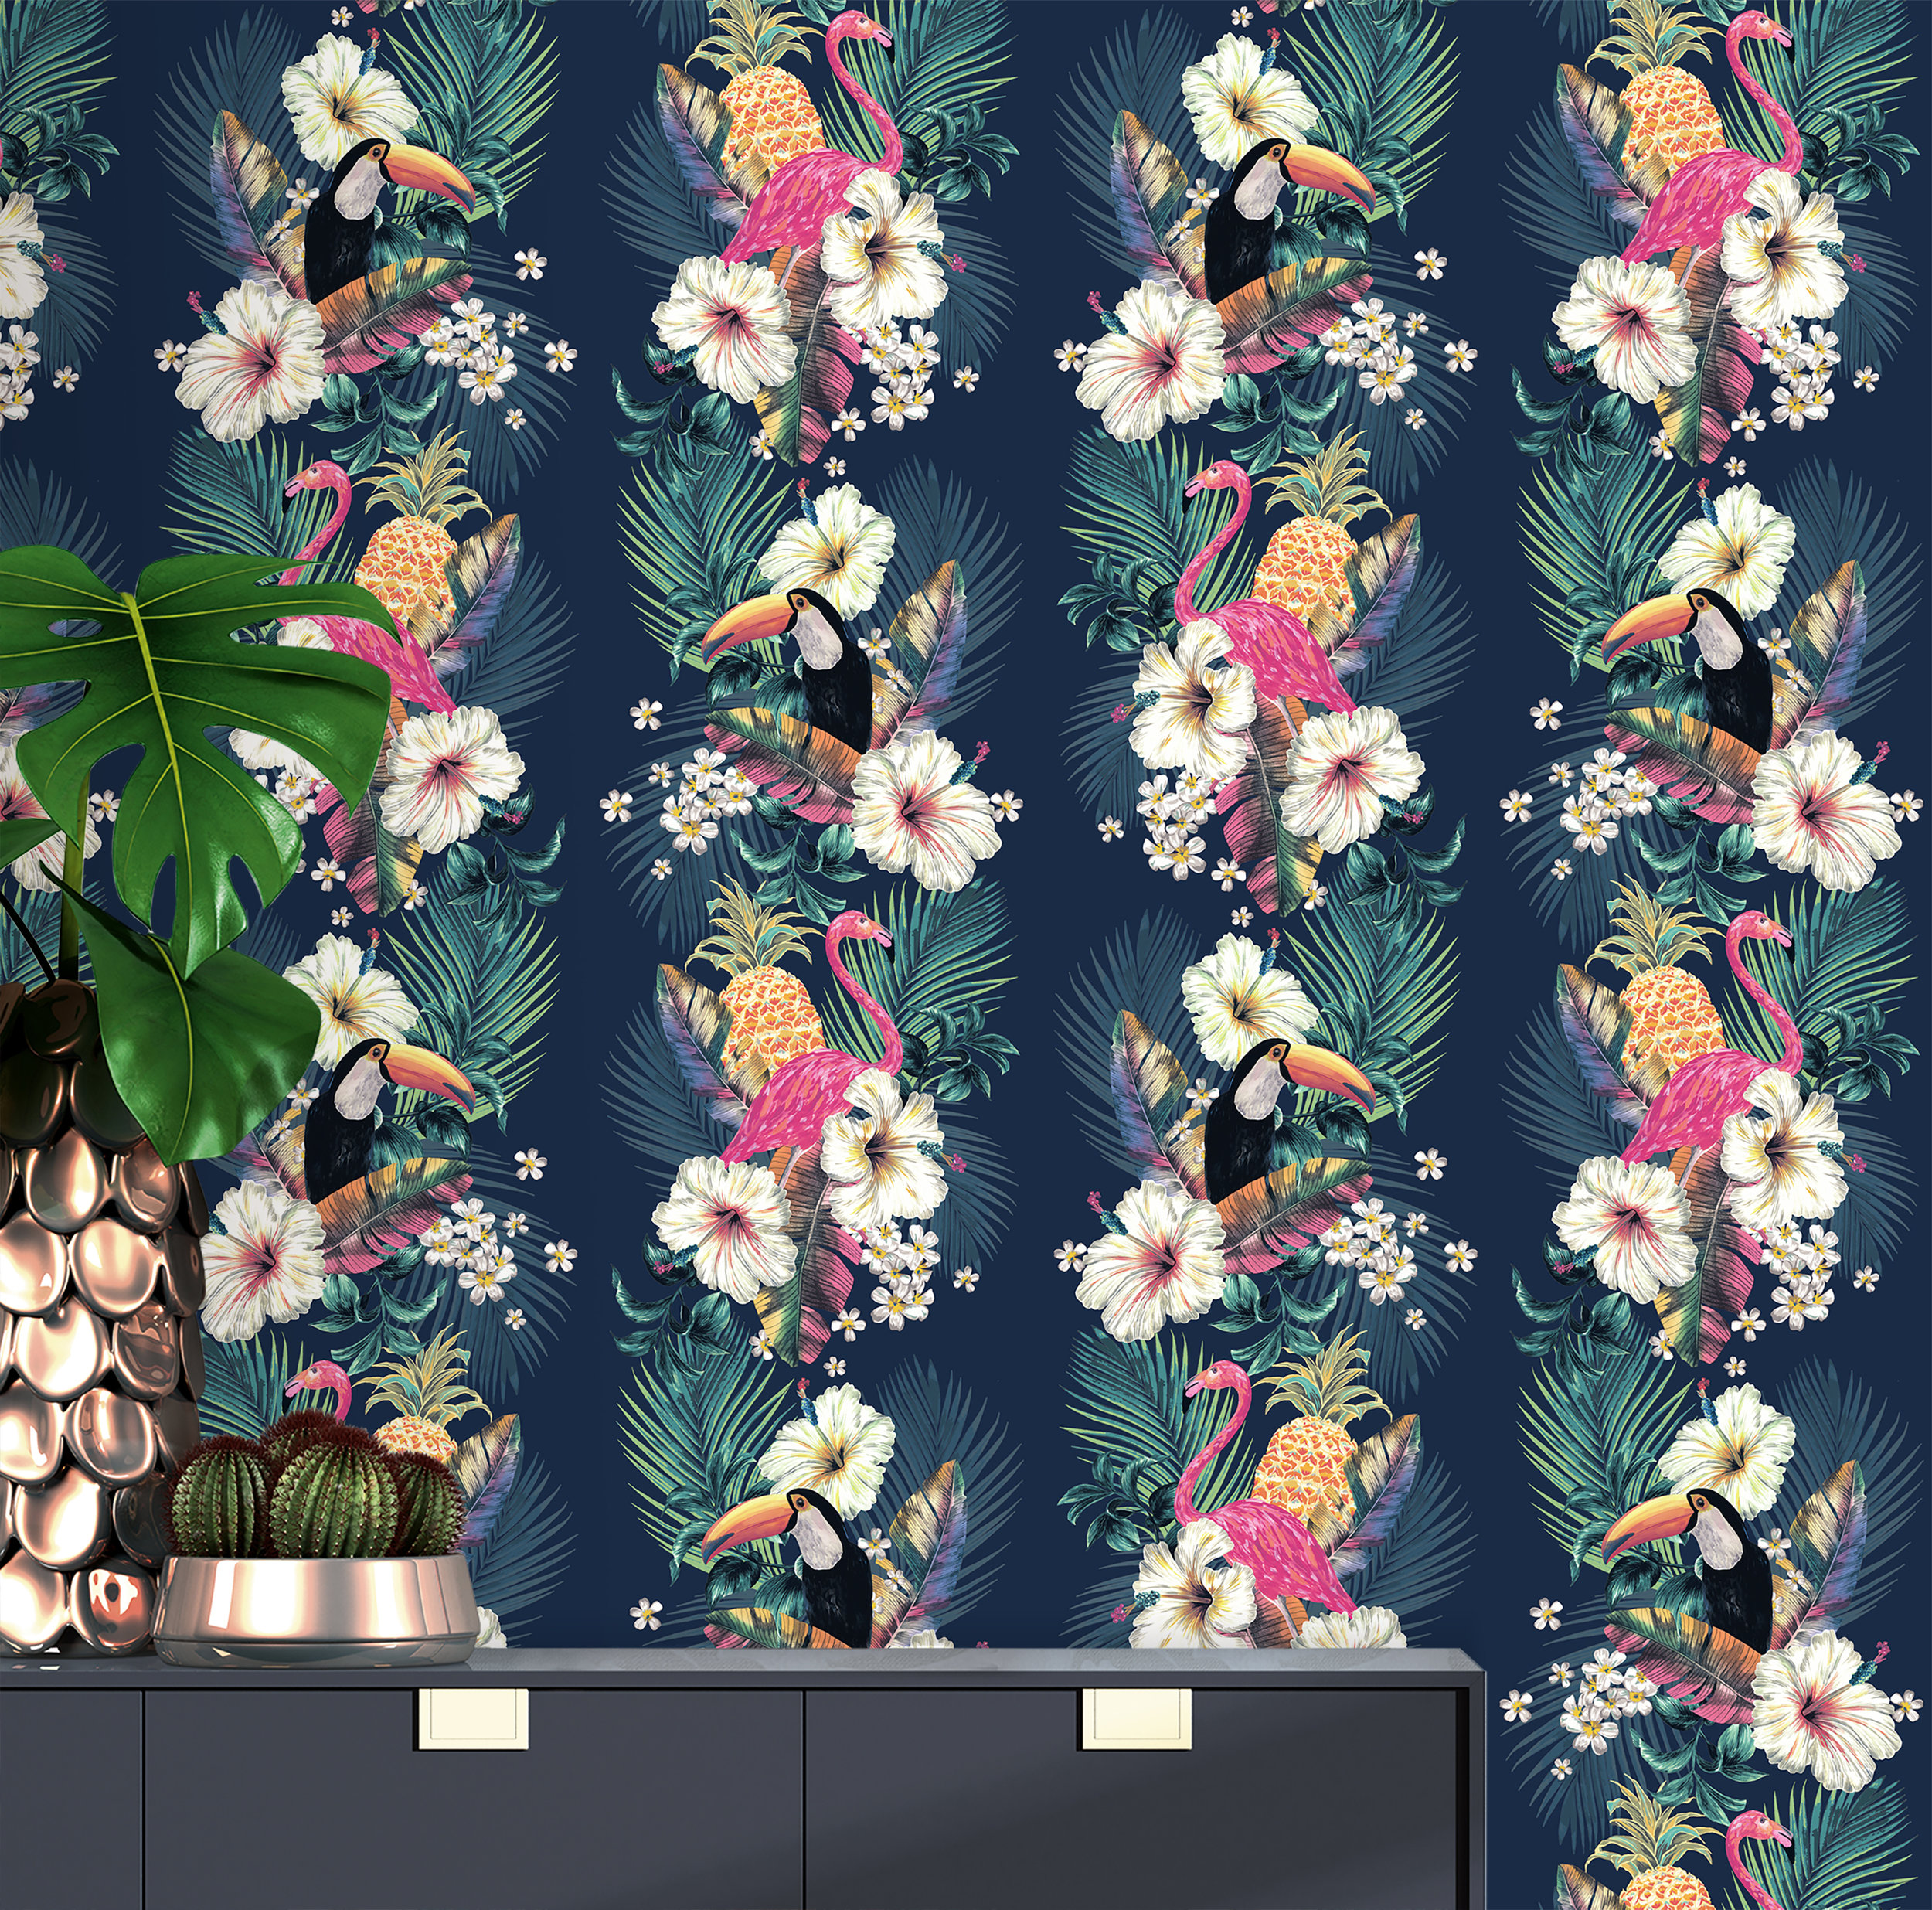 Accessorize Maui Wallpaper - Ink Blue Multi copy.jpg